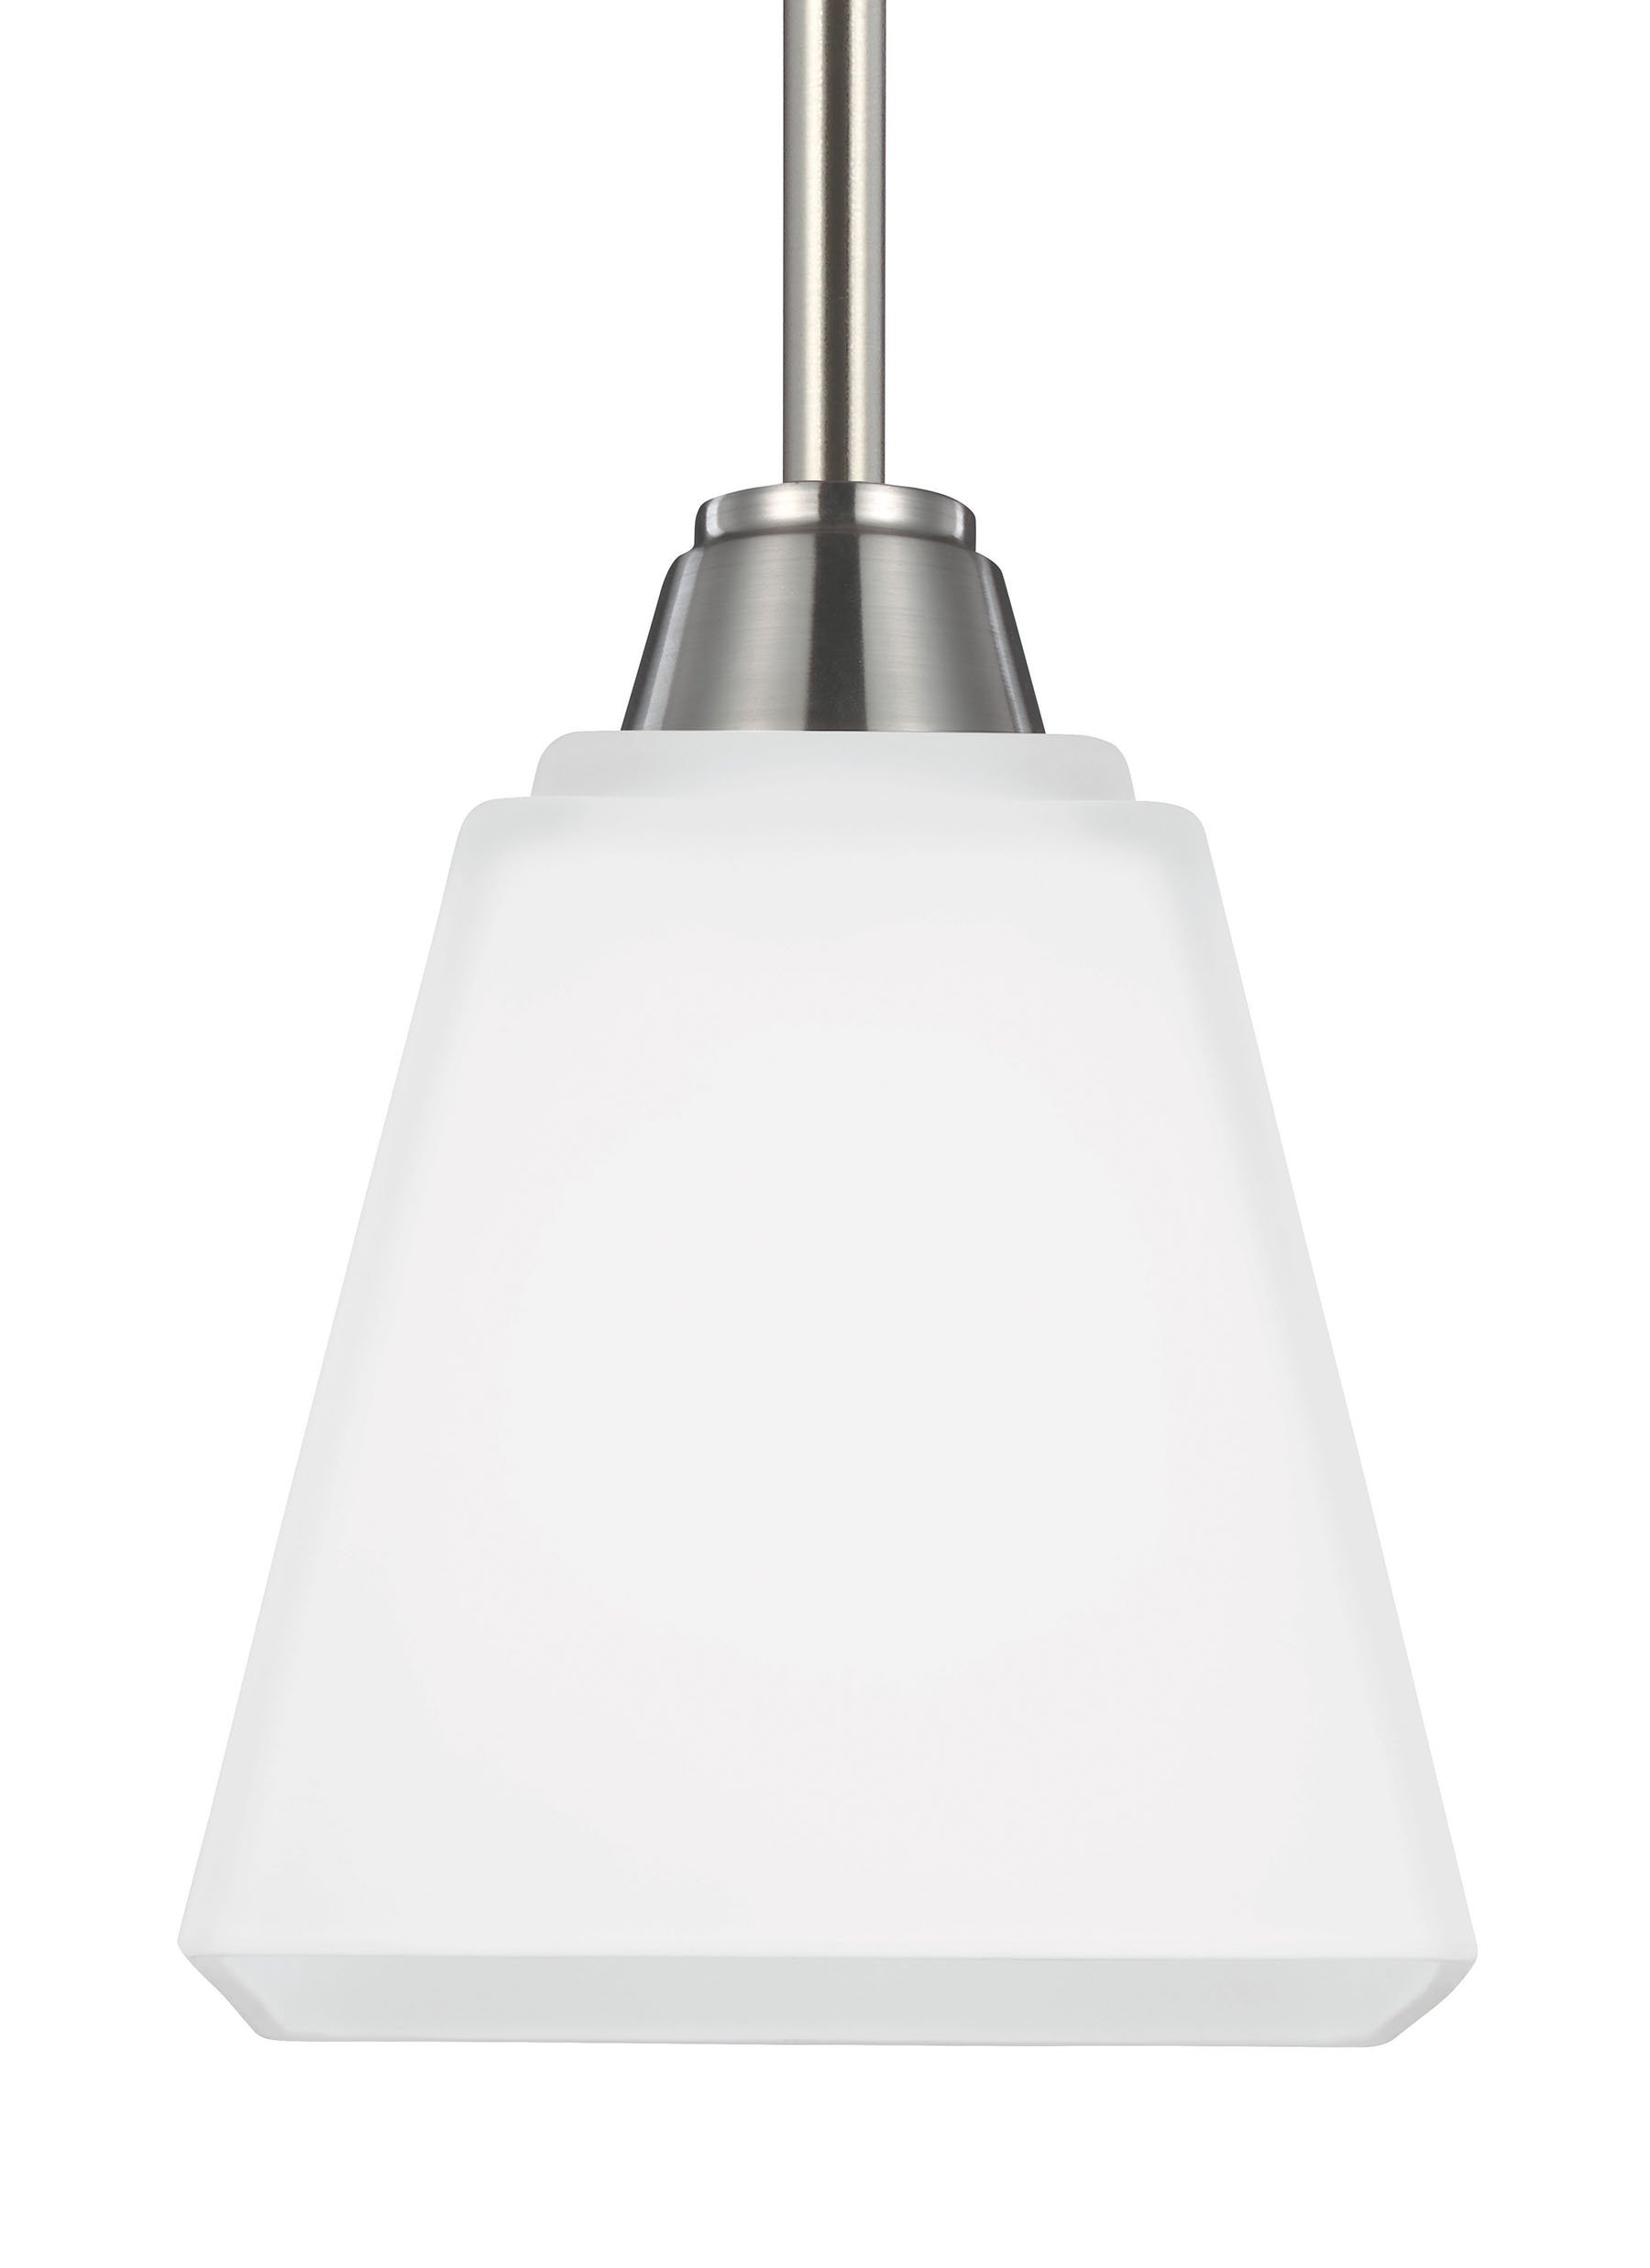 Seagull 6113001-962 One 6113001-962-One Light Mini Pendant Pwt, Nckl, B/S, Slvr. by Seagull (Image #1)